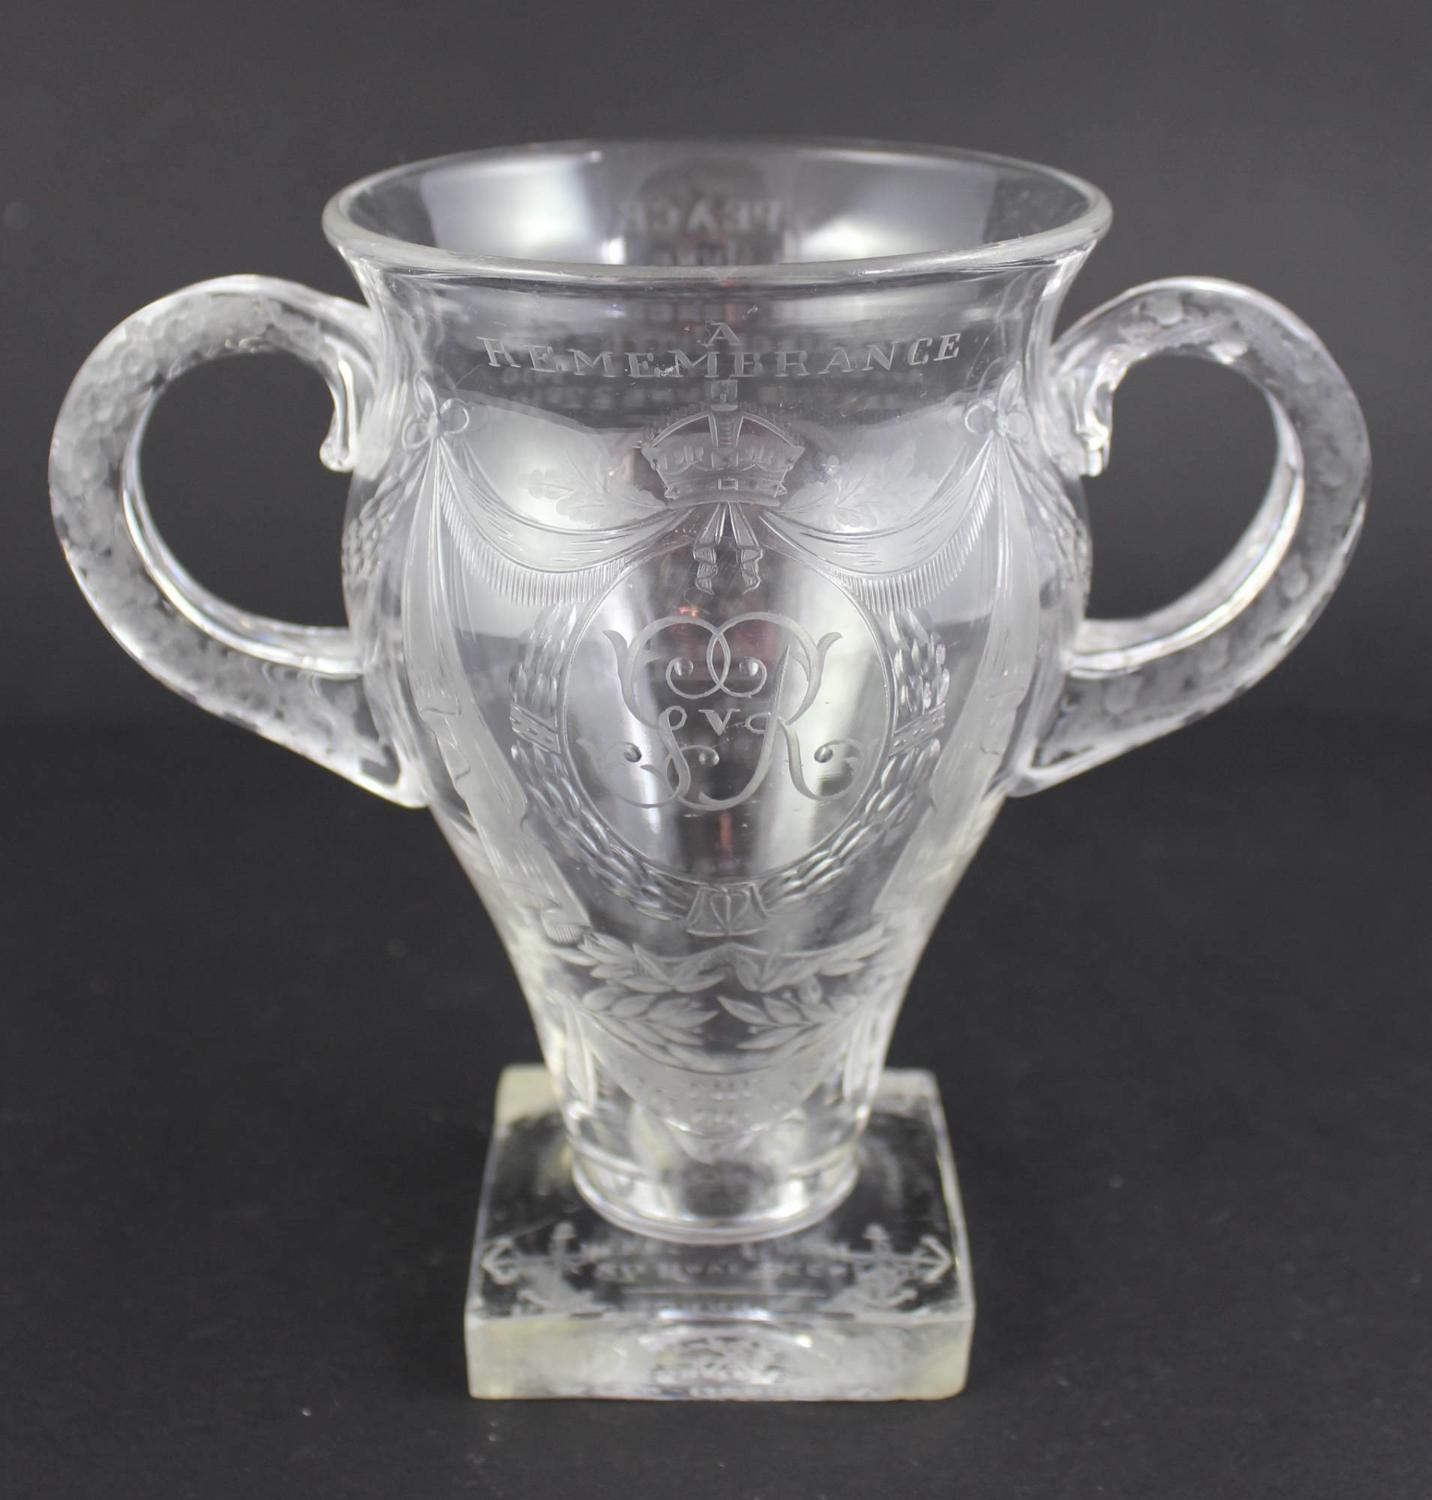 George V Commemorative Limited Edition Engraved Glass Vase